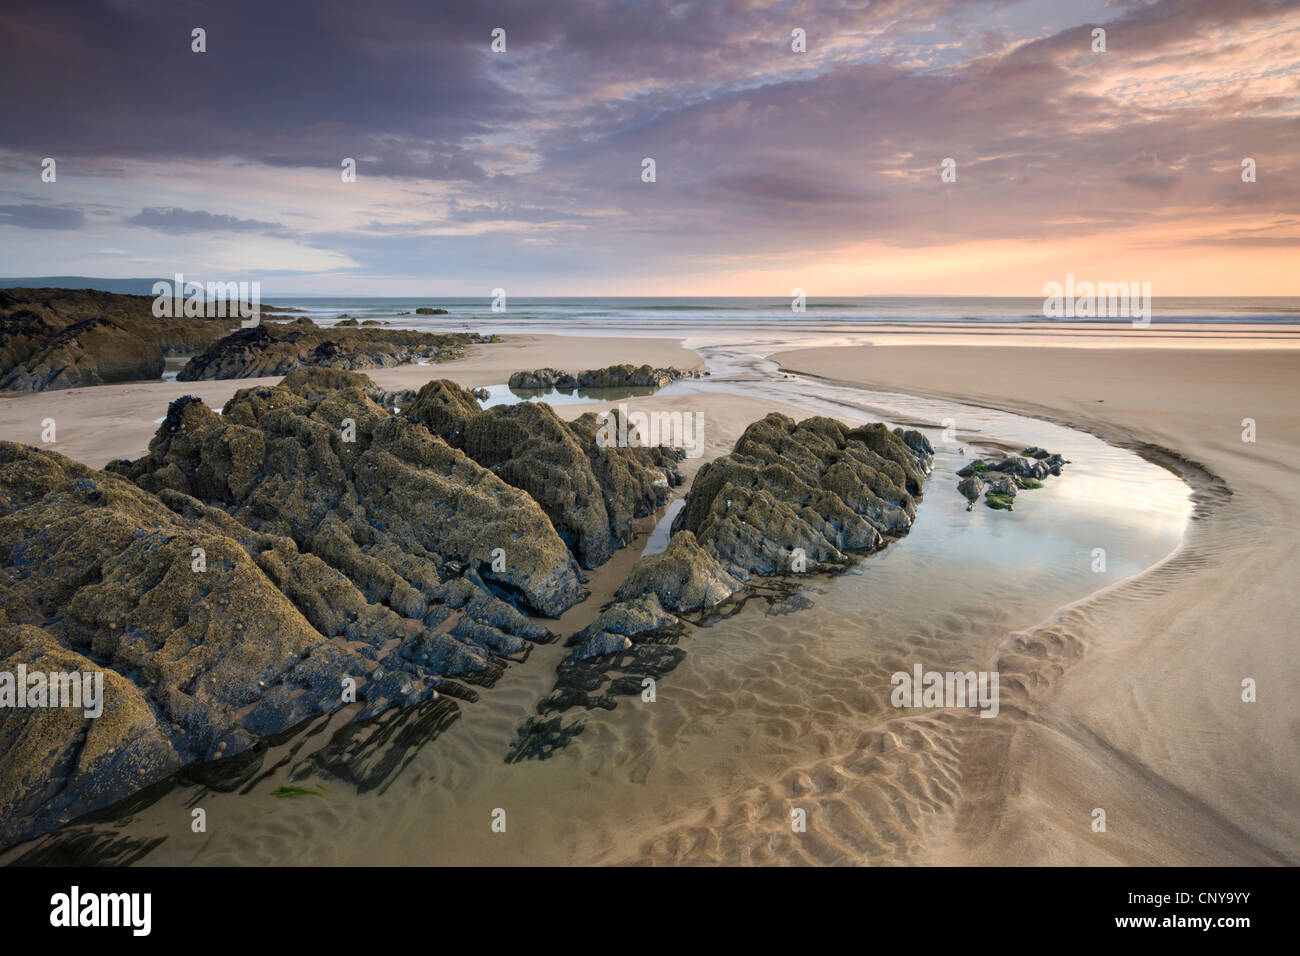 Sunset on the rocky and sandy beach at Combesgate, Woolacombe, Devon, England. Summer (June) 2010. - Stock Image